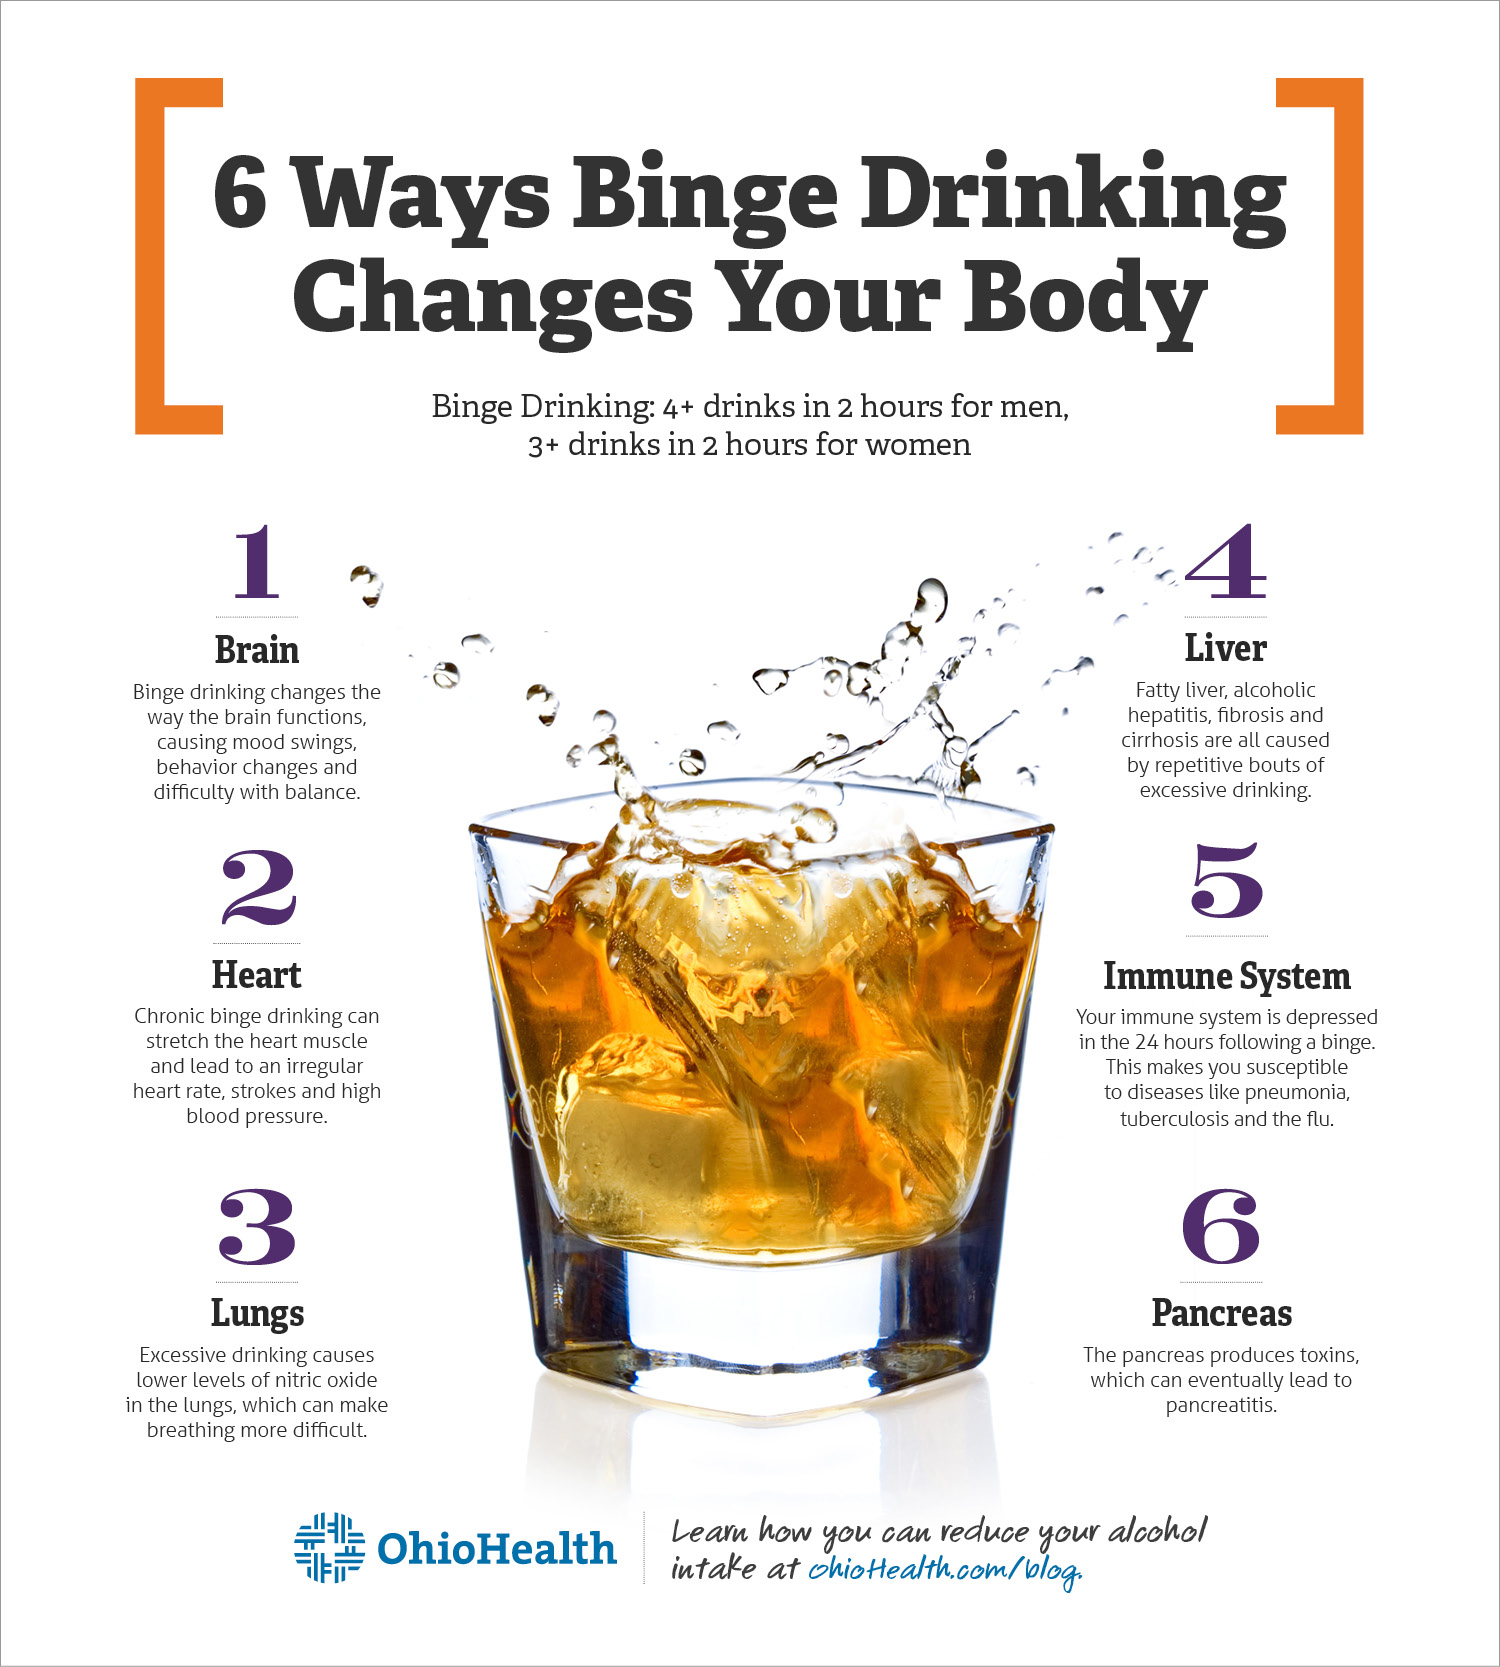 the effects of binge drinking on the body (includes infographic)